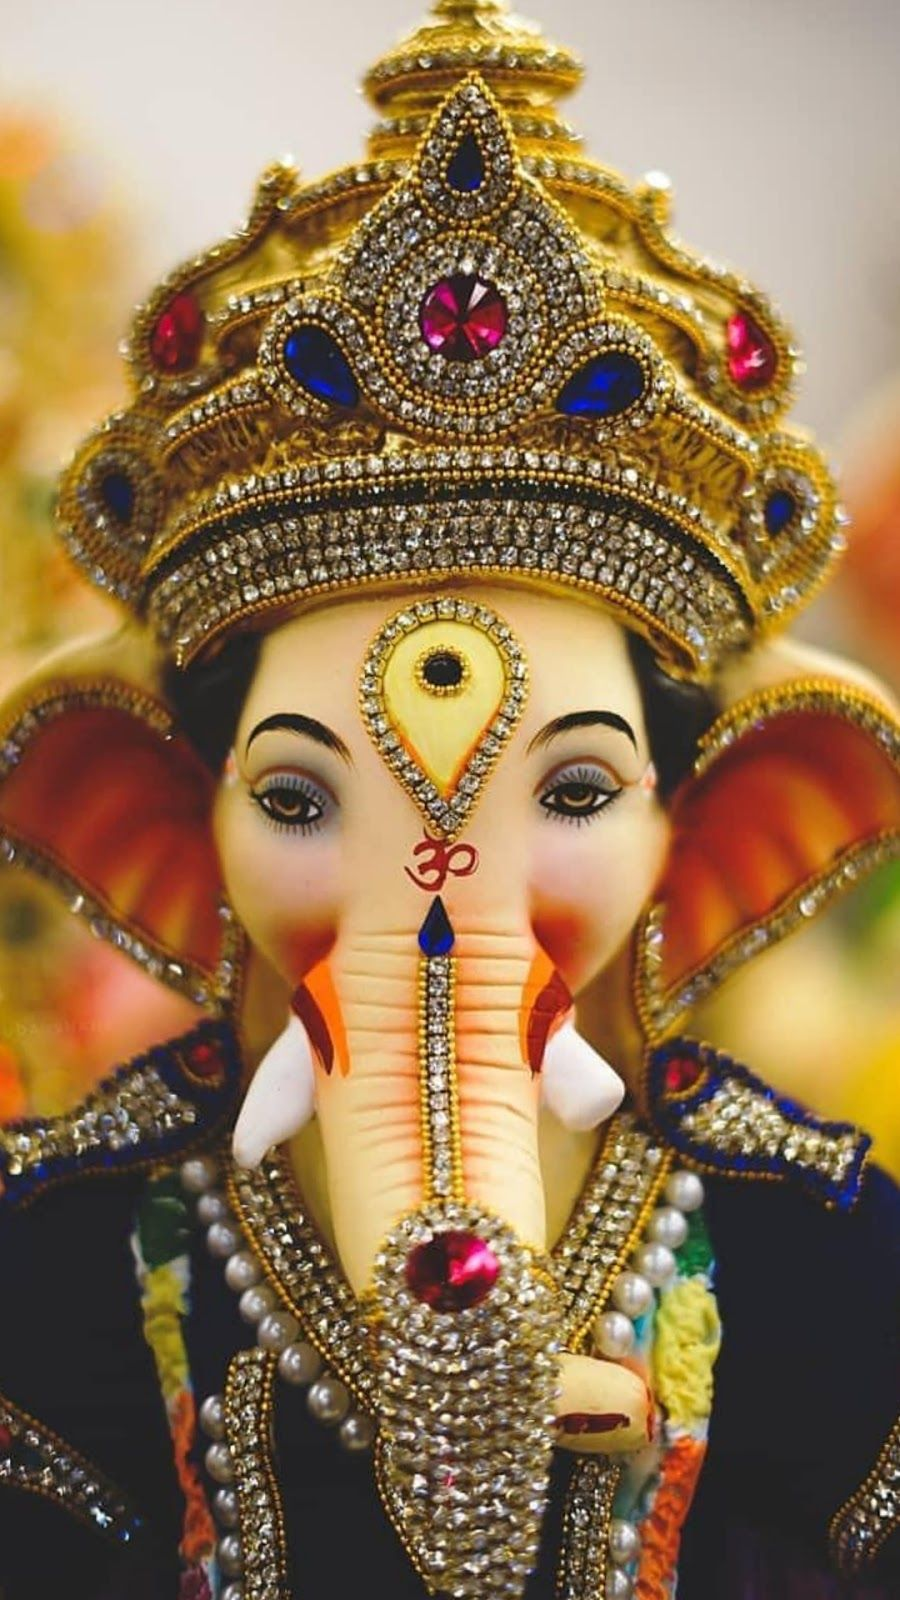 As The God Of Beginnings He Is Honoured At The Start Of Rites And Ceremonies New Year 2020 New Year Ganesh Images Ganpati Bappa Wallpapers Ganesh Wallpaper